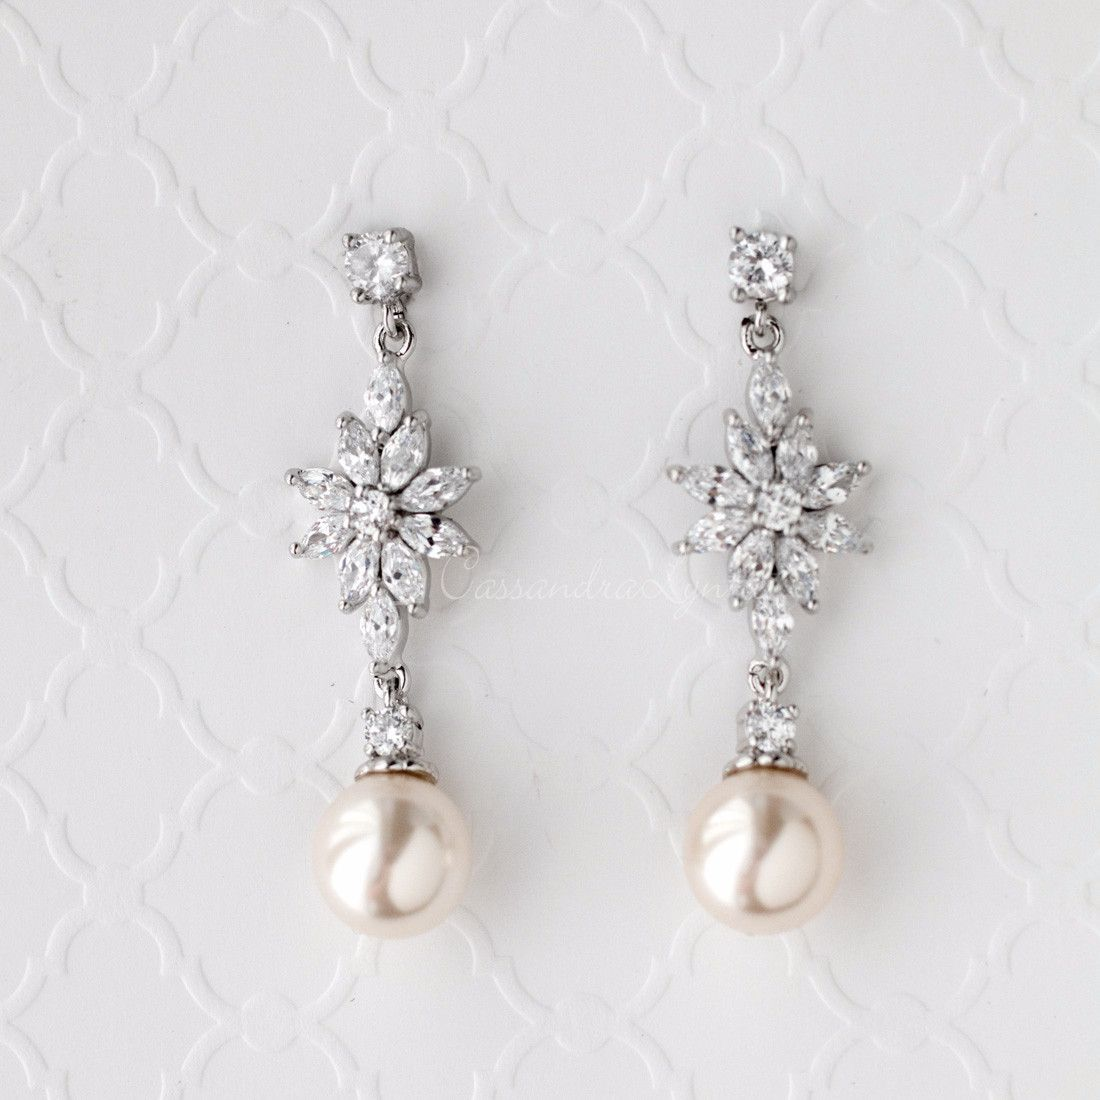 Champagne Pearl Wedding Earrings with CZ Jewels | Clothing ...